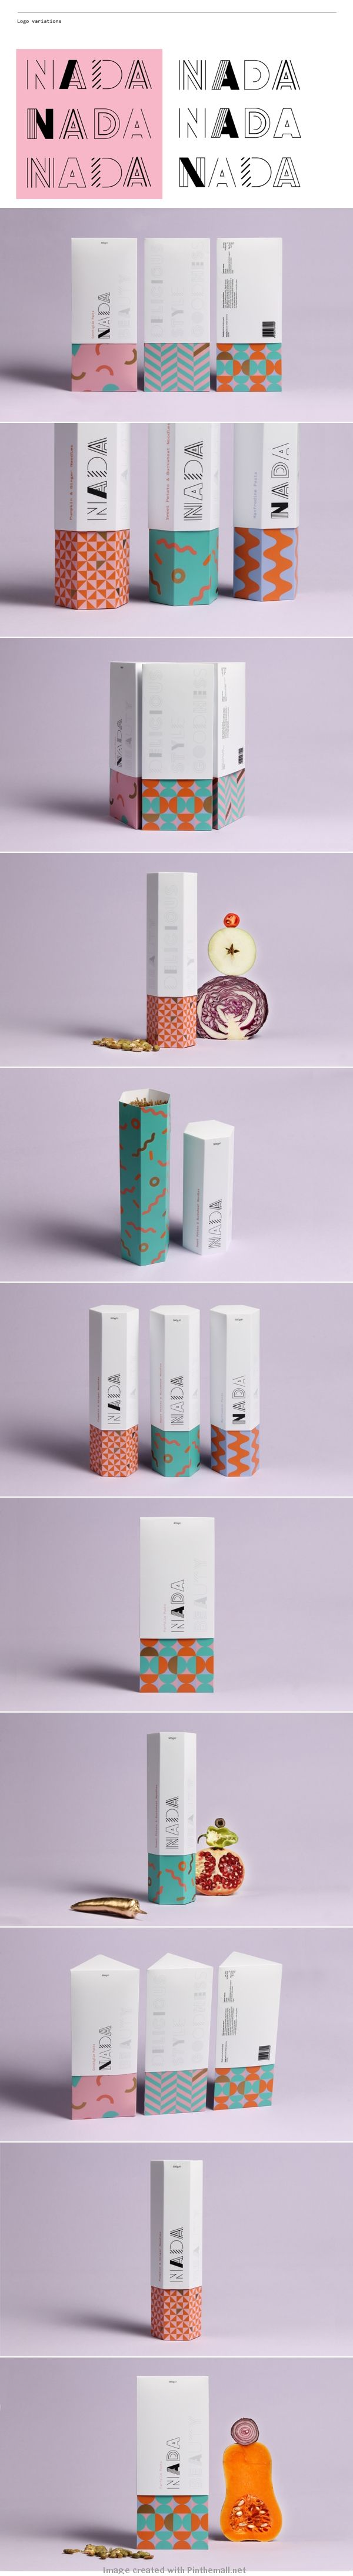 Nada || Designers: Eve Warren and Thomas Squire || School: Leeds College Of Art || Country: United Kingdom